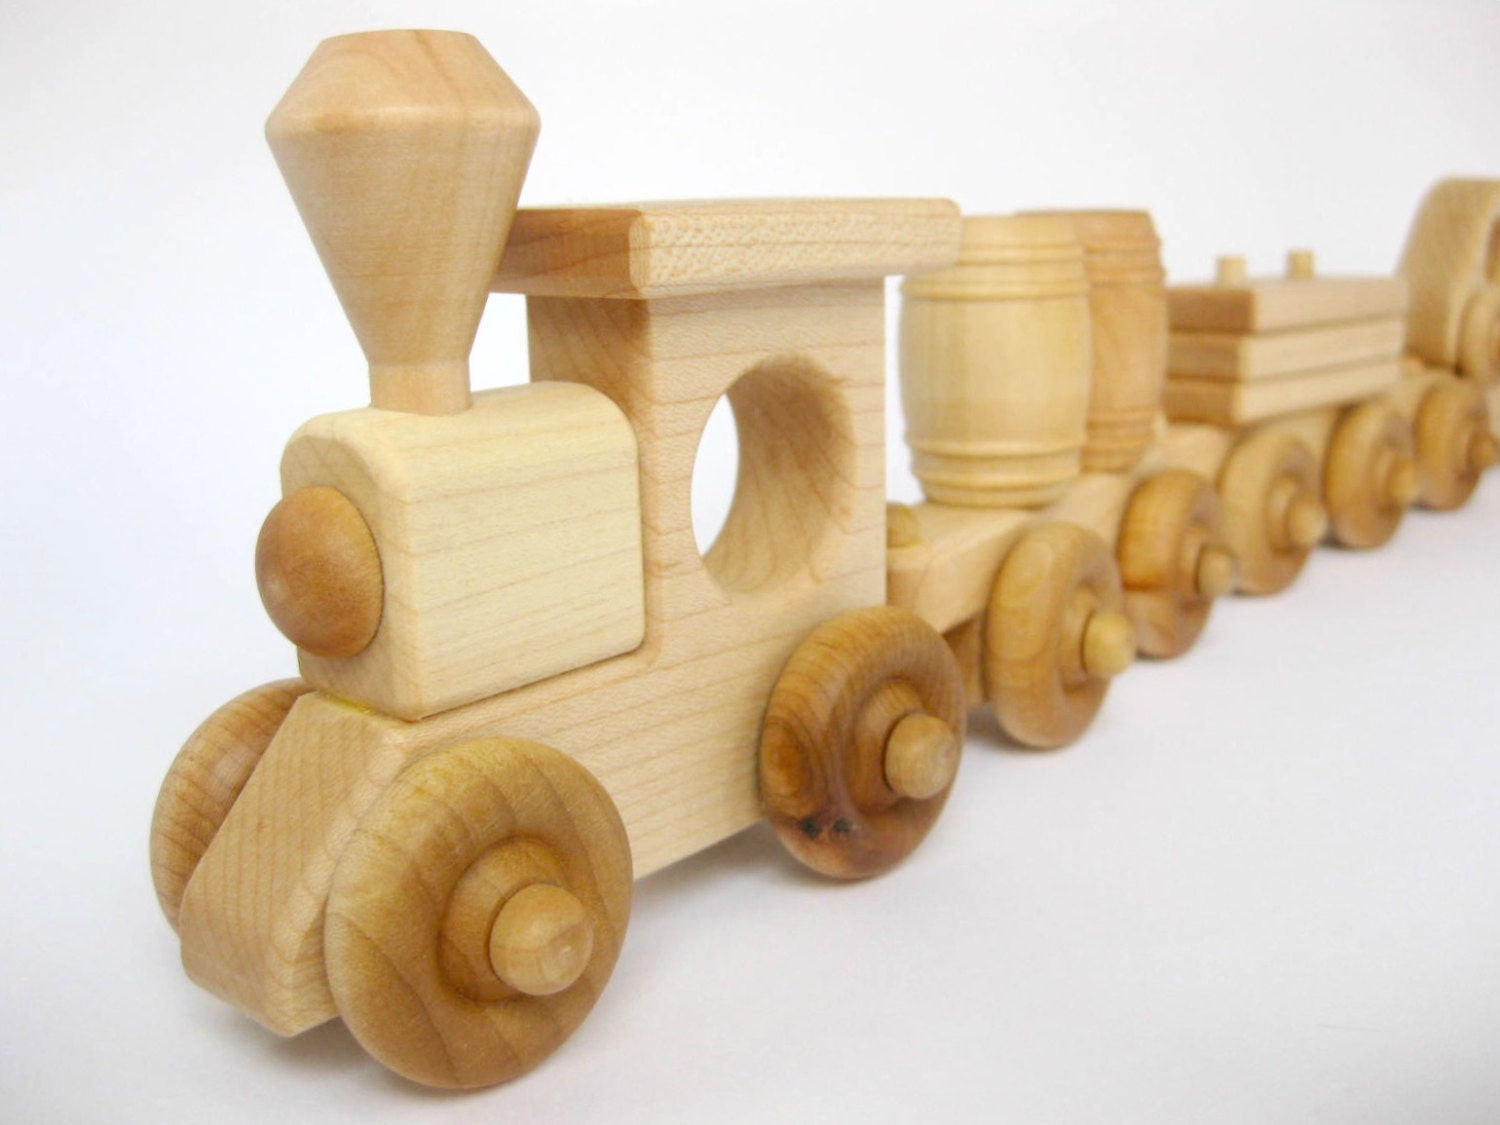 Wooden Toy Train Set 6 Cars natural wood toy